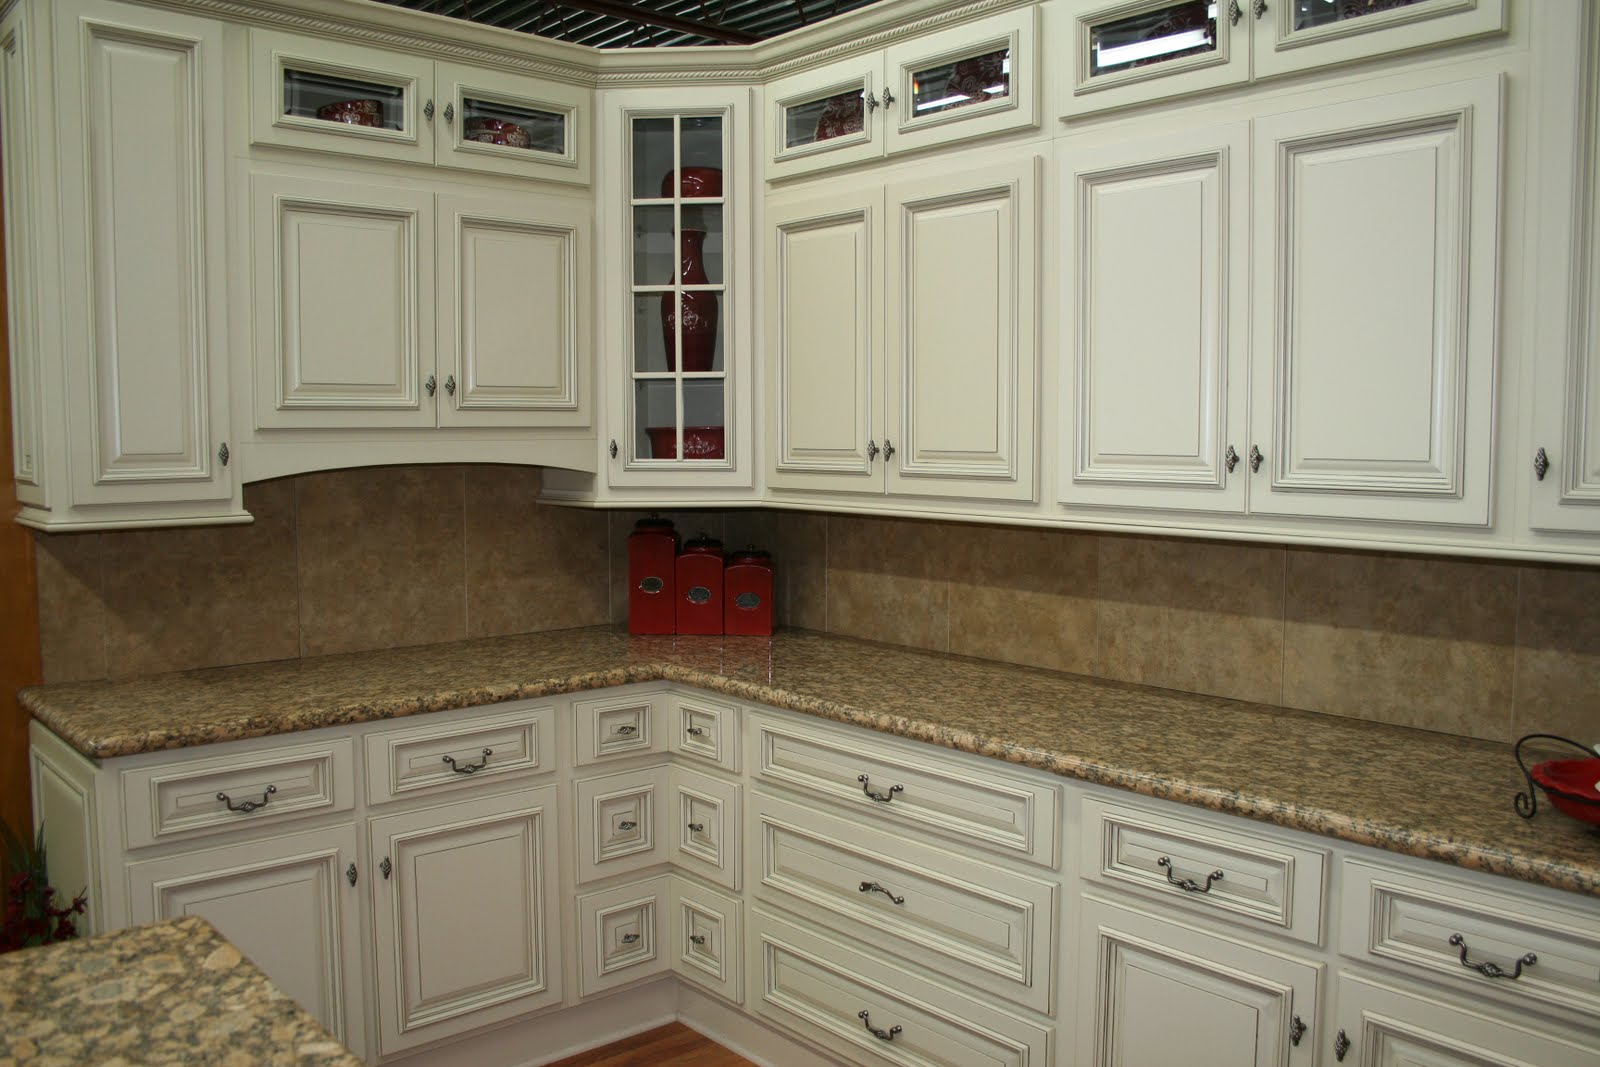 Refinish kitchen cabinets antique white roselawnlutheran for Refinishing old kitchen cabinets